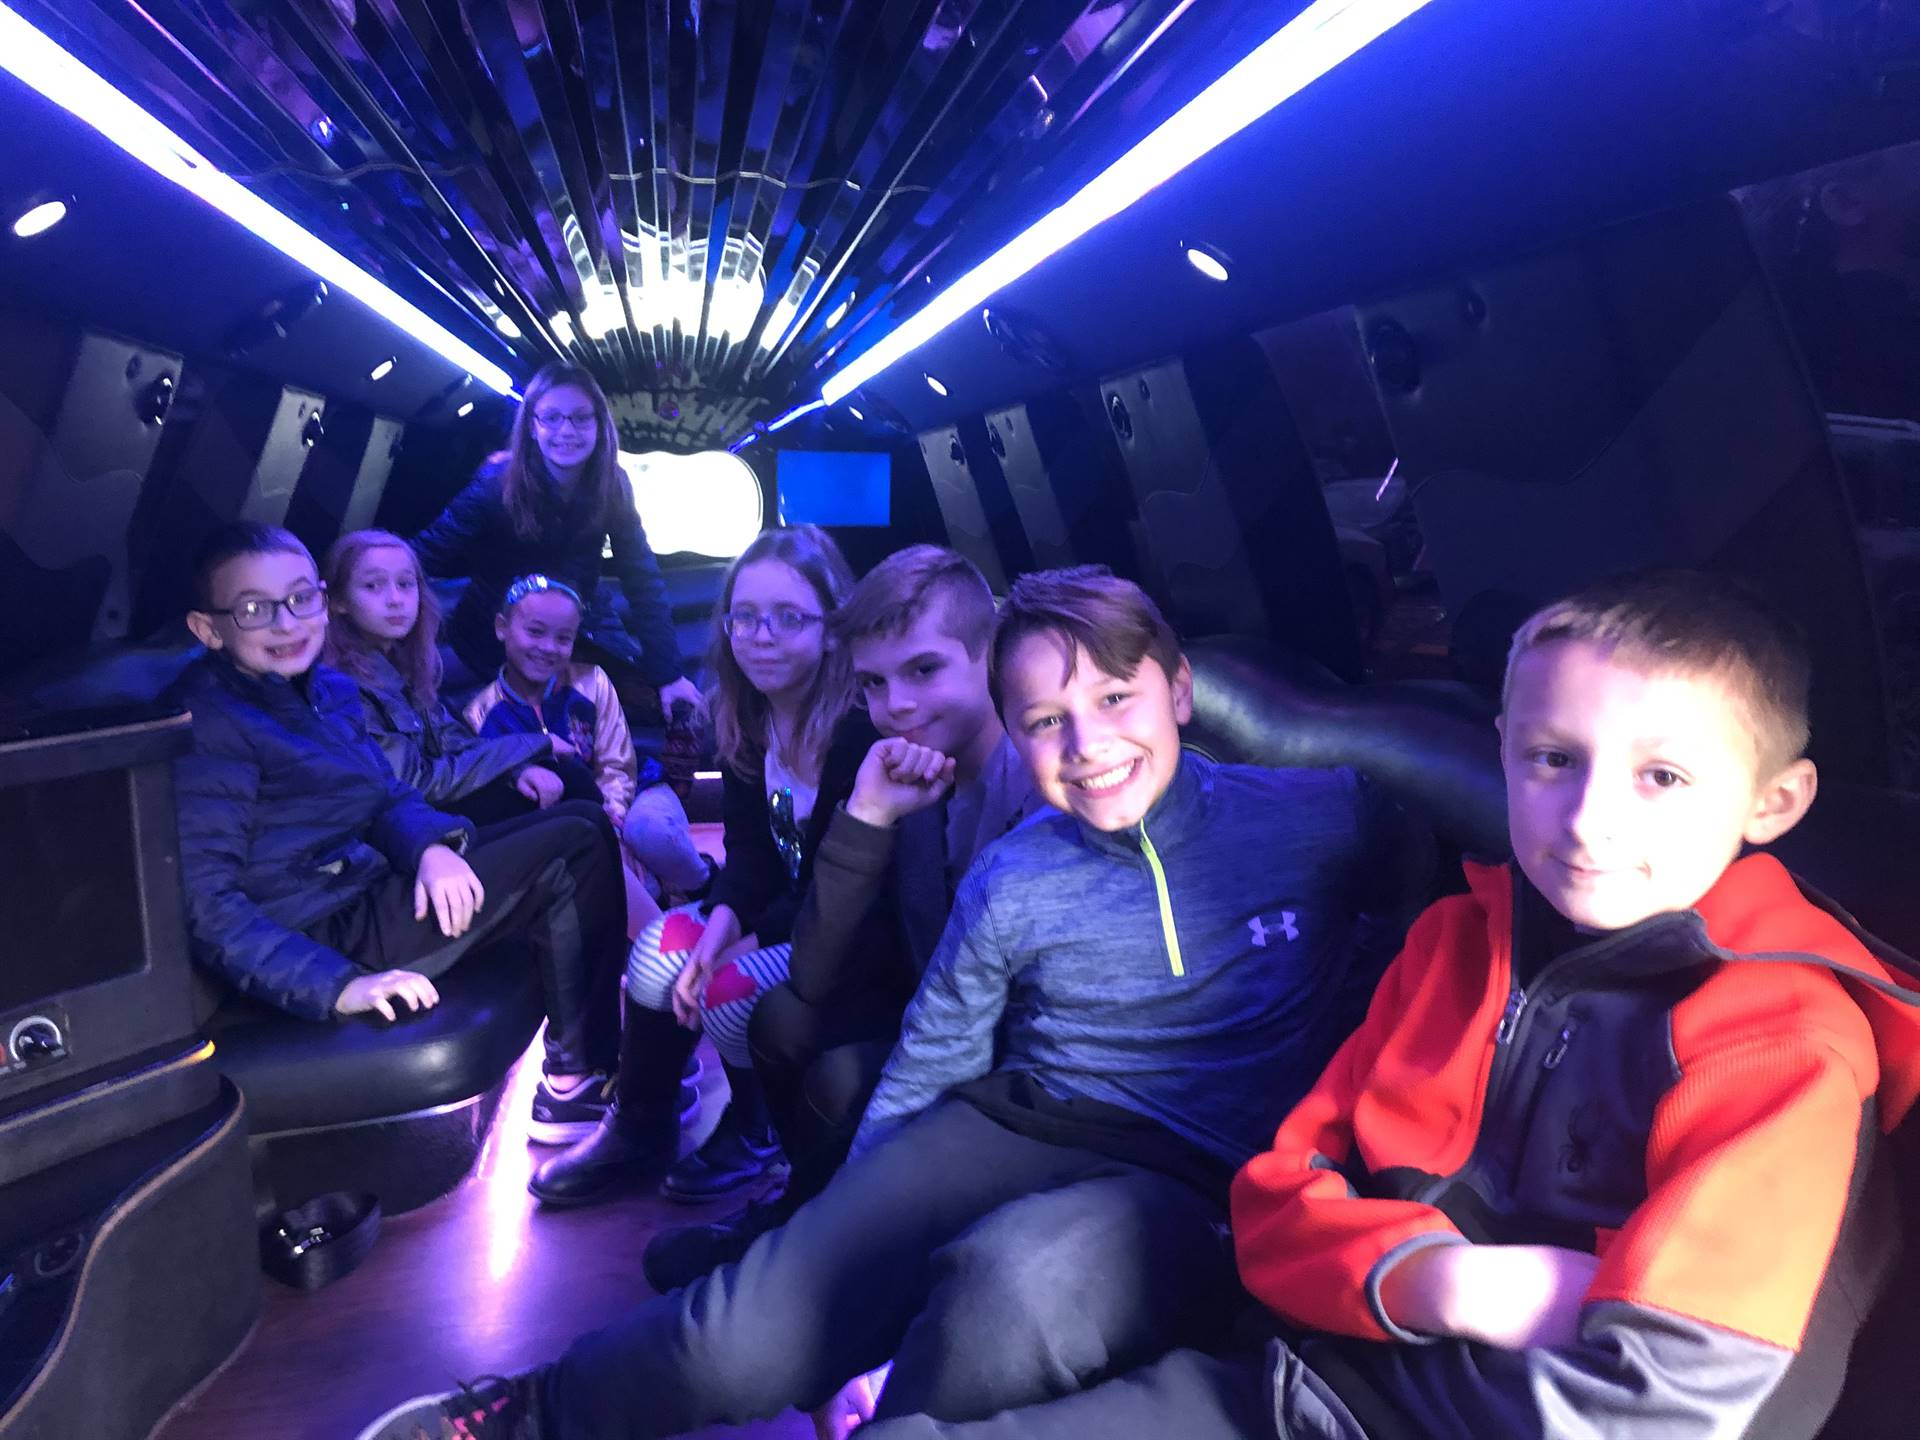 Limo Ride